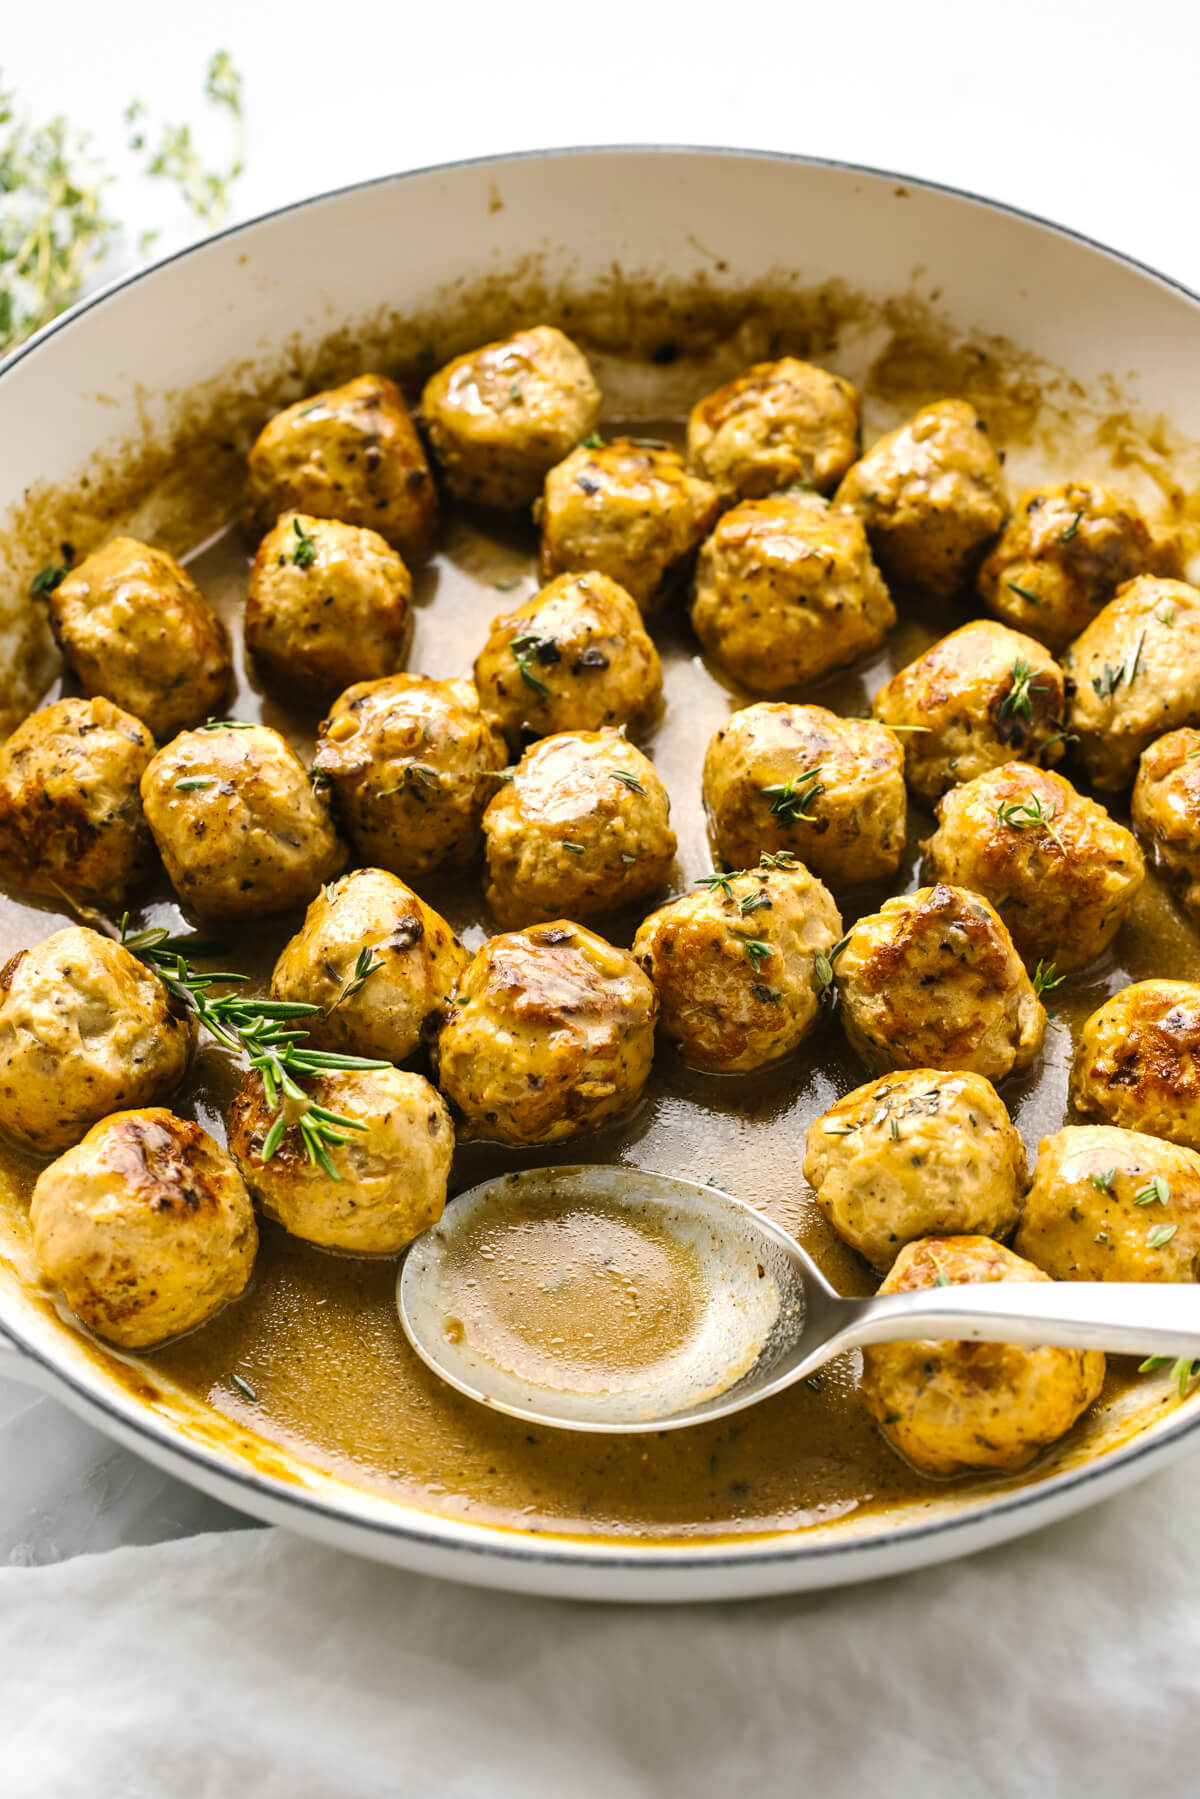 Turkey meatballs in a sauce in a pan with a spoon